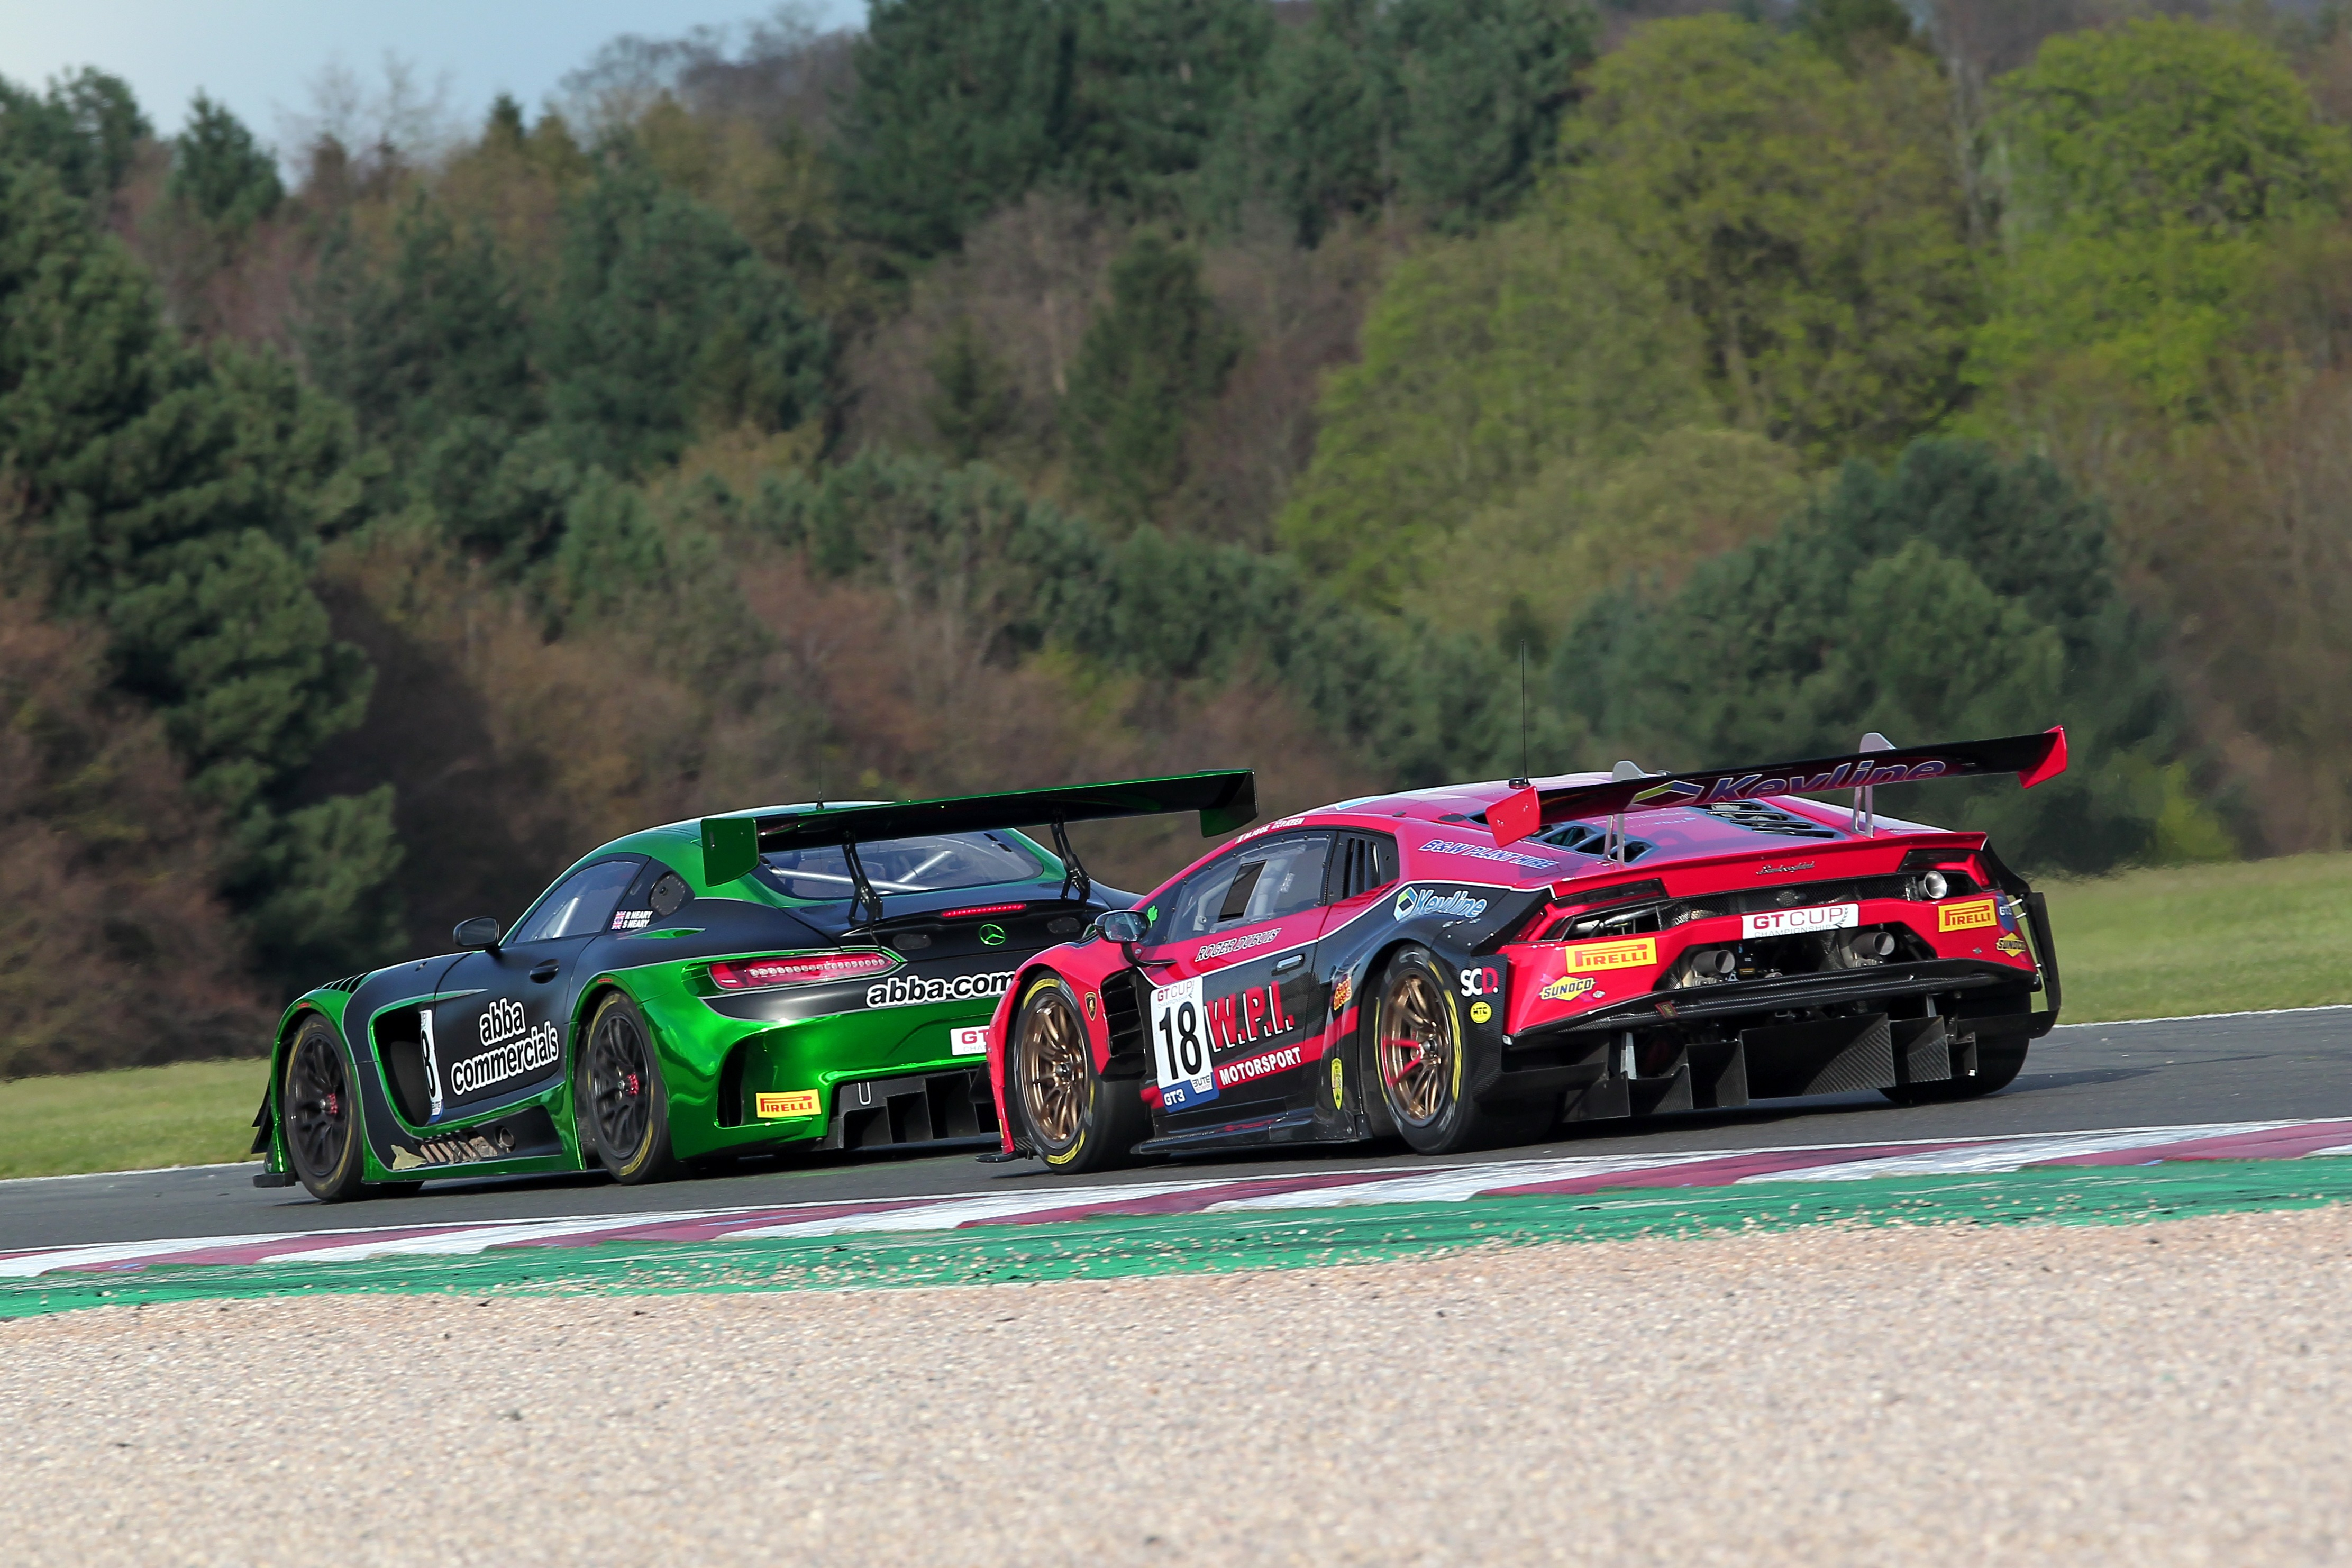 The Abba Mercedes battled the WPI Lamborghini for much of the weekend